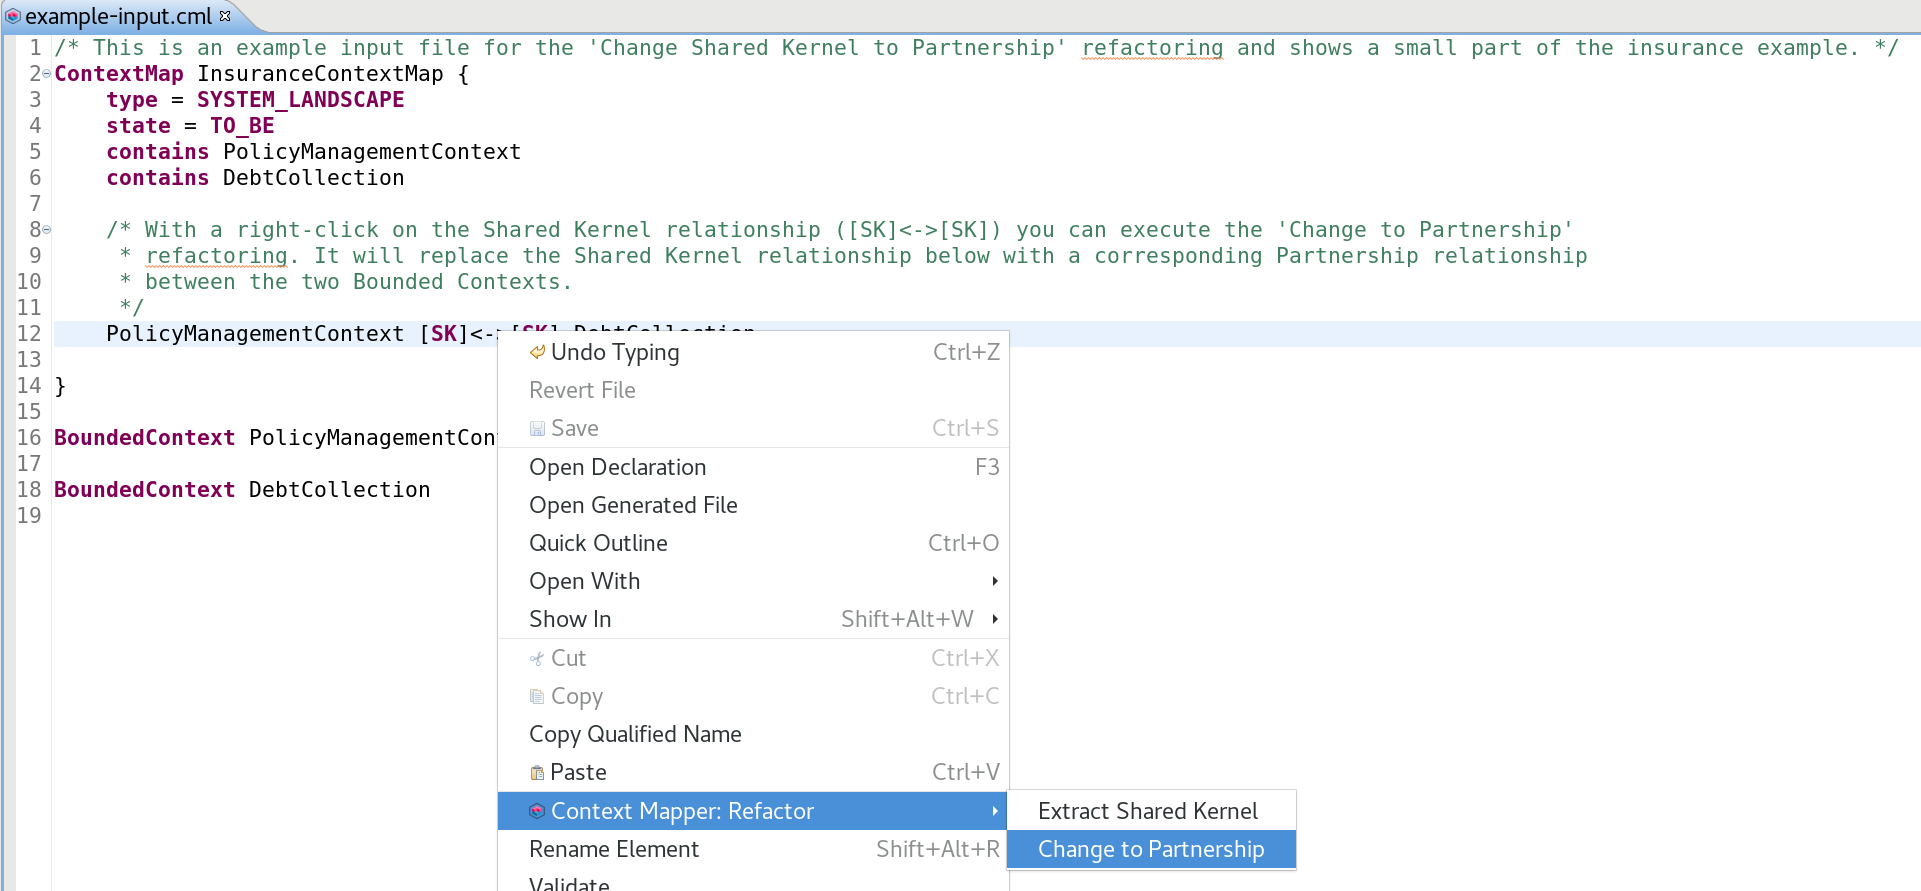 Change Shared Kernel to Partnership Example Input